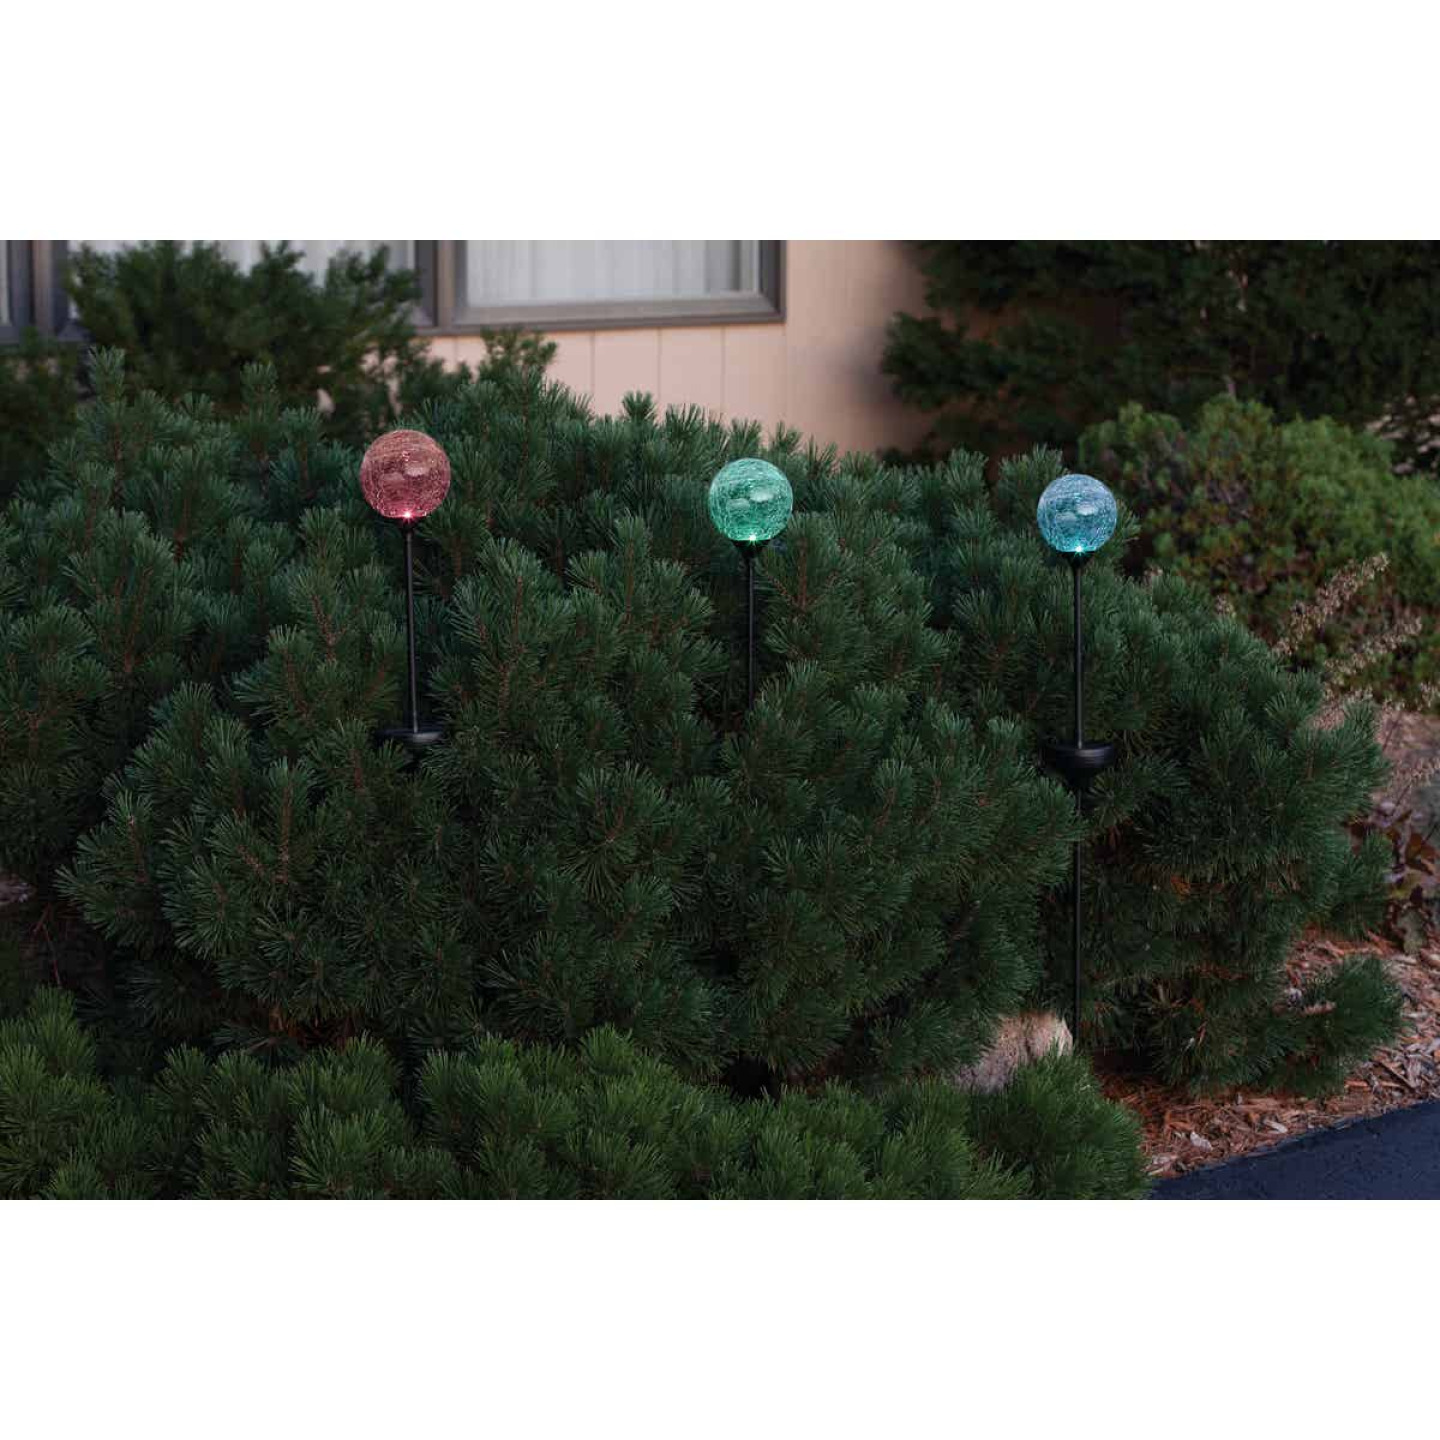 Moonrays Crackle Glass Globe 30 In. H. Solar Stake Light Image 2